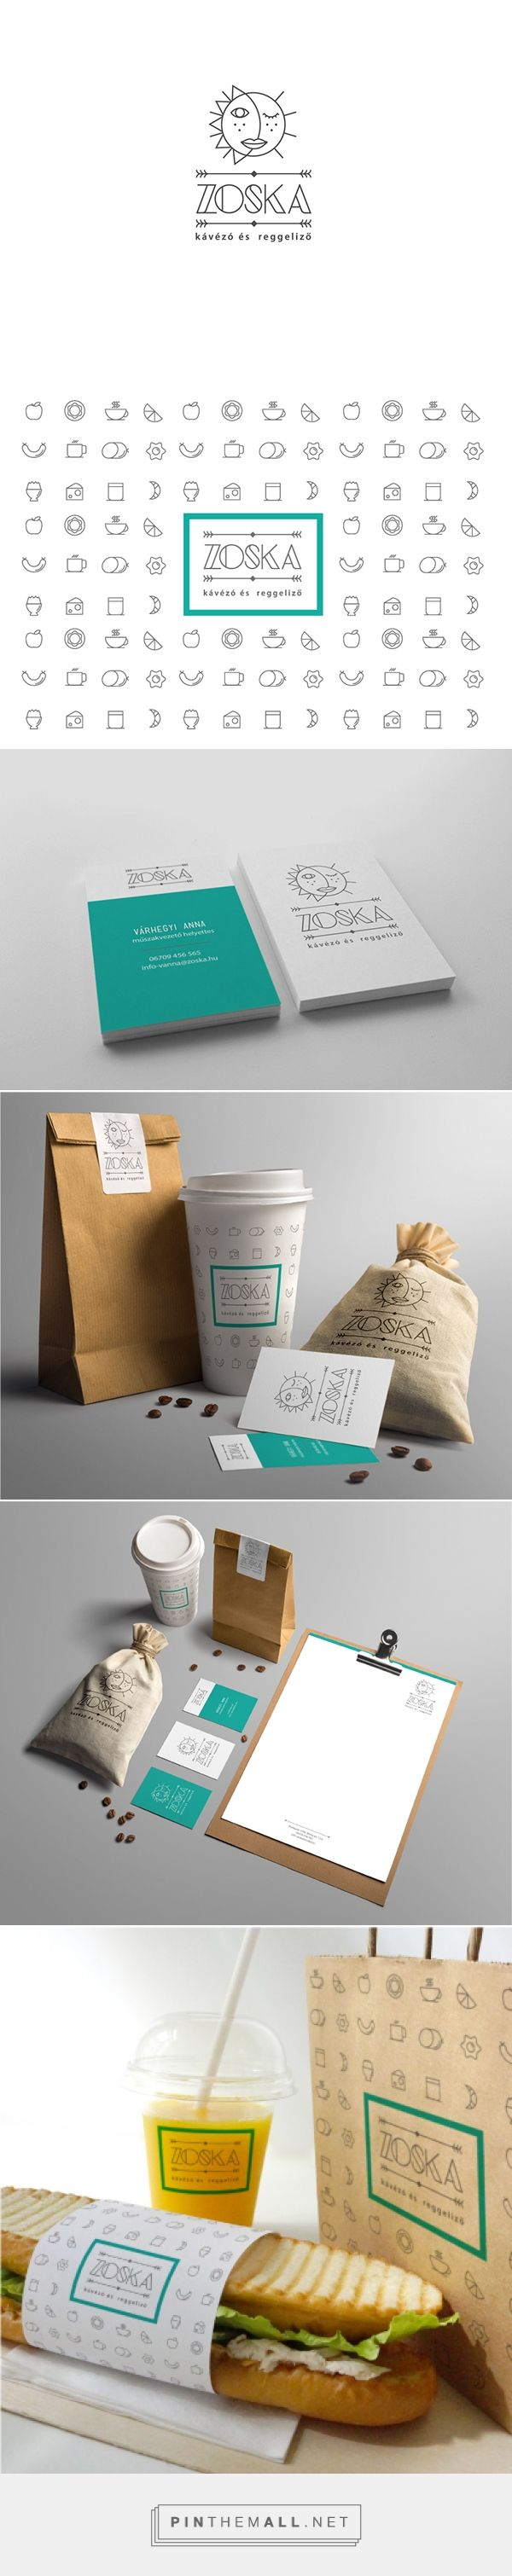 Zoska Coffee packaging on Behance by Balazs Hajnal, Brighton, UK curated by Packaging Diva PD.  Coffee shop branding project for a Hungarian based coffee shop in the capital of Budapest. To create a logo with an additional icon following the latest design trends as well as giving a unique look.